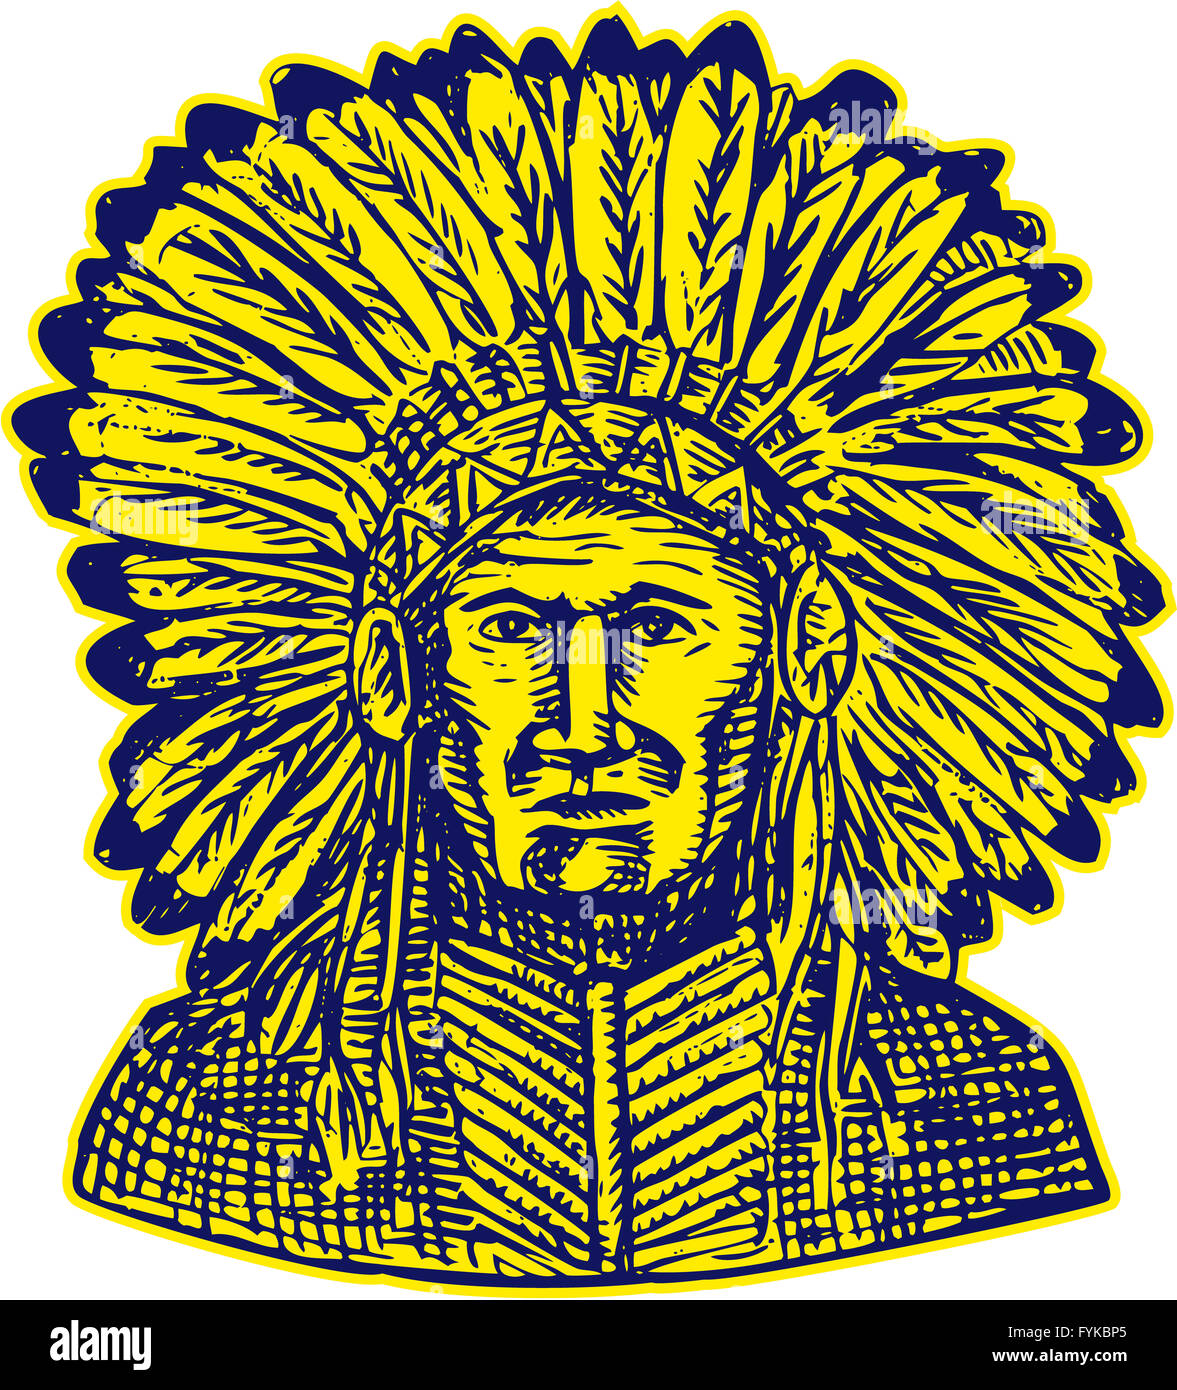 Native American Indian Chief Warrior Etching - Stock Image